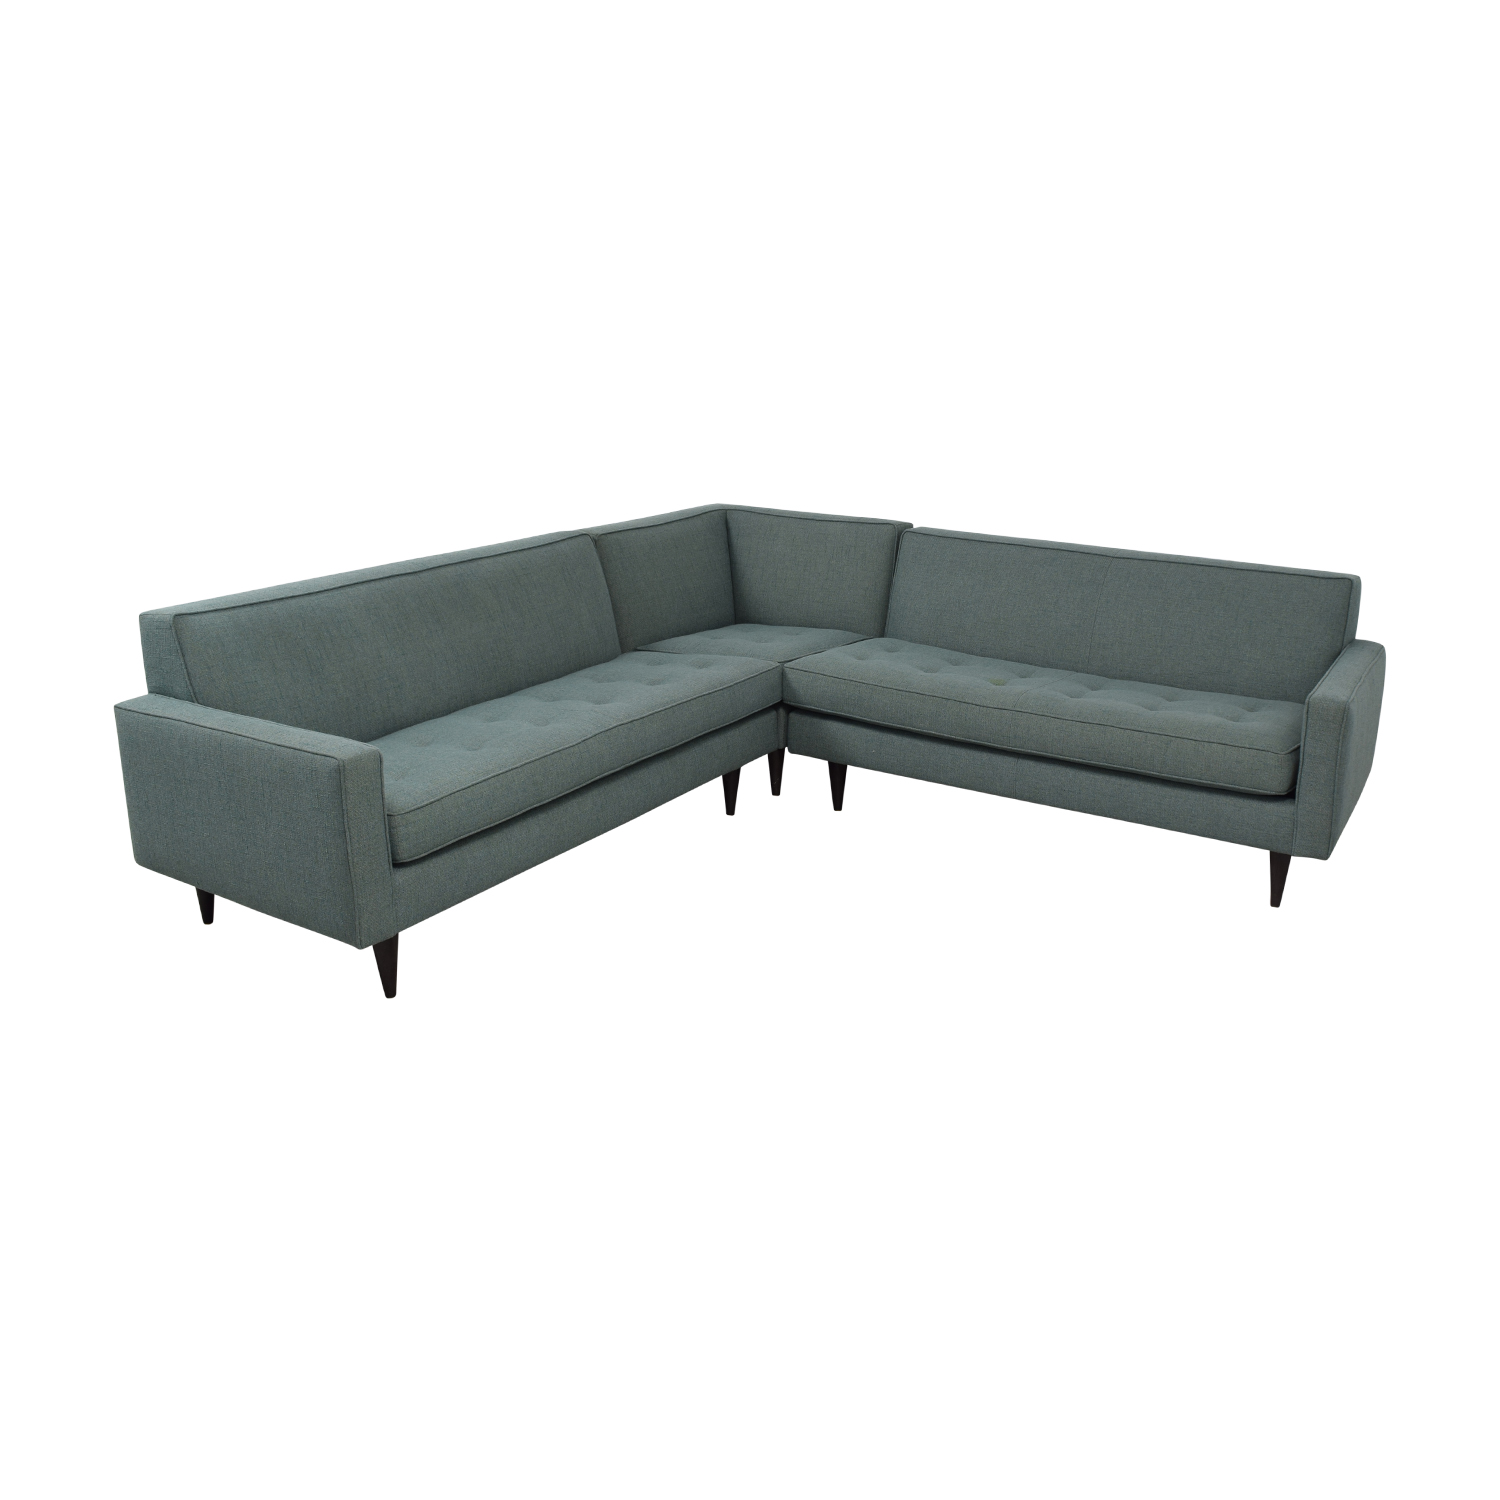 Room & Board Room & Board Reese Tactum Teal Sectional coupon